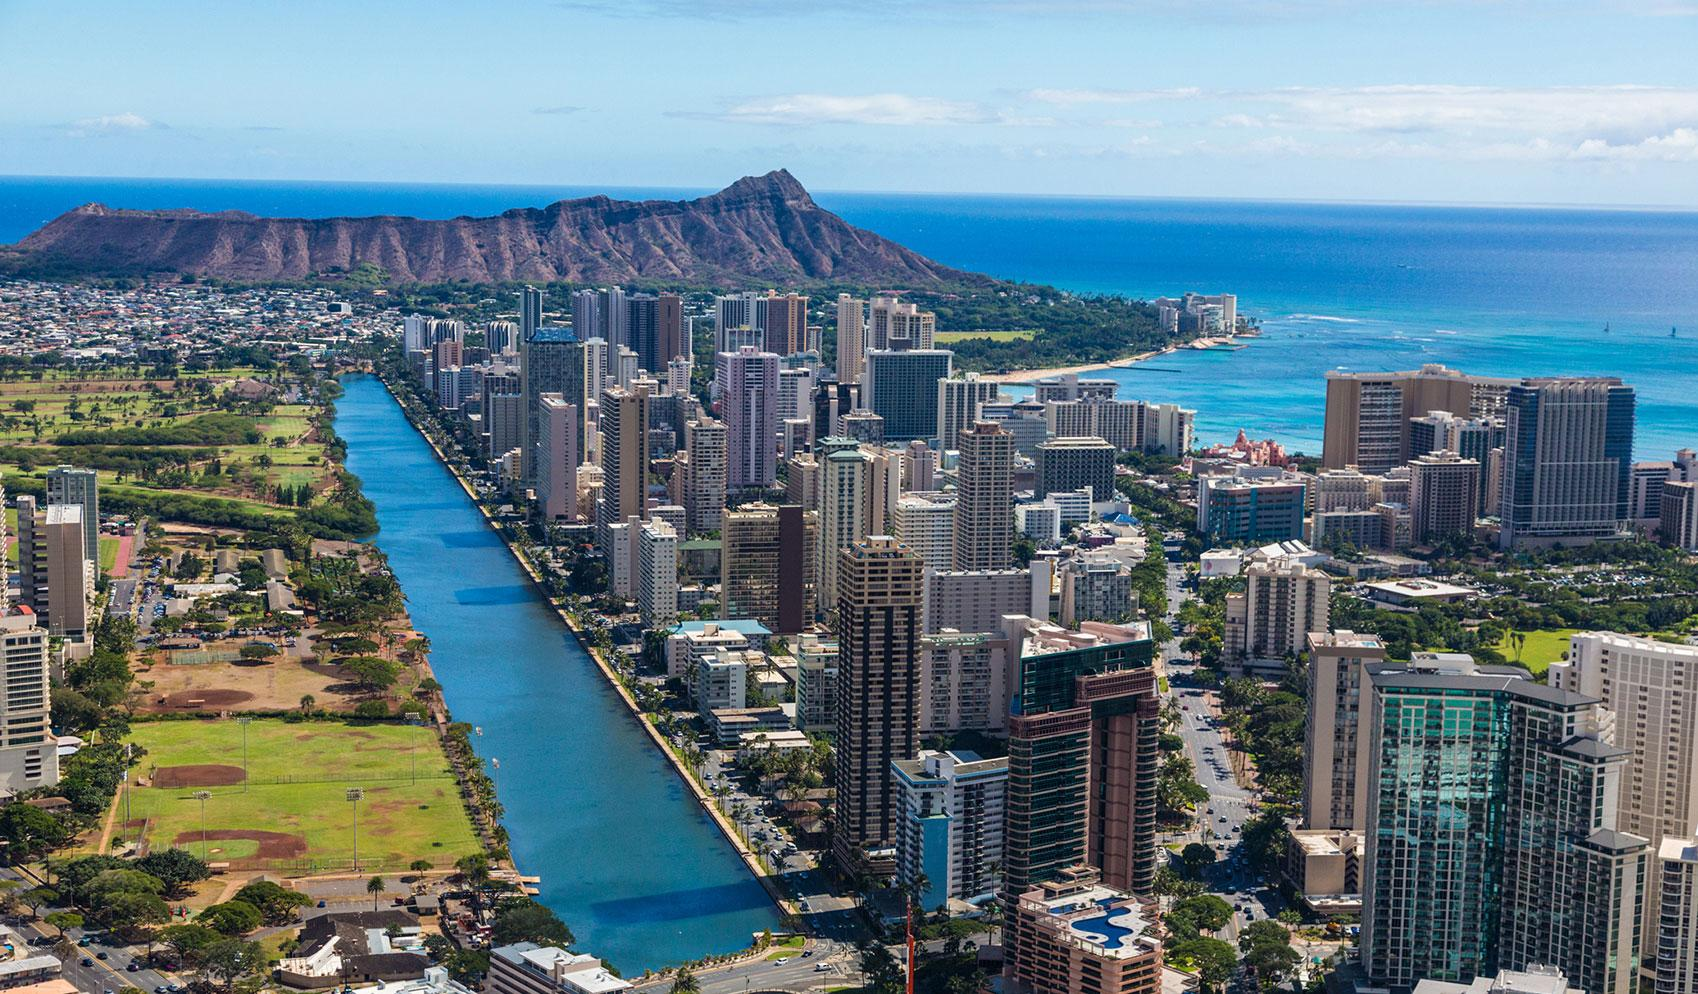 Aerial view of Honolulu